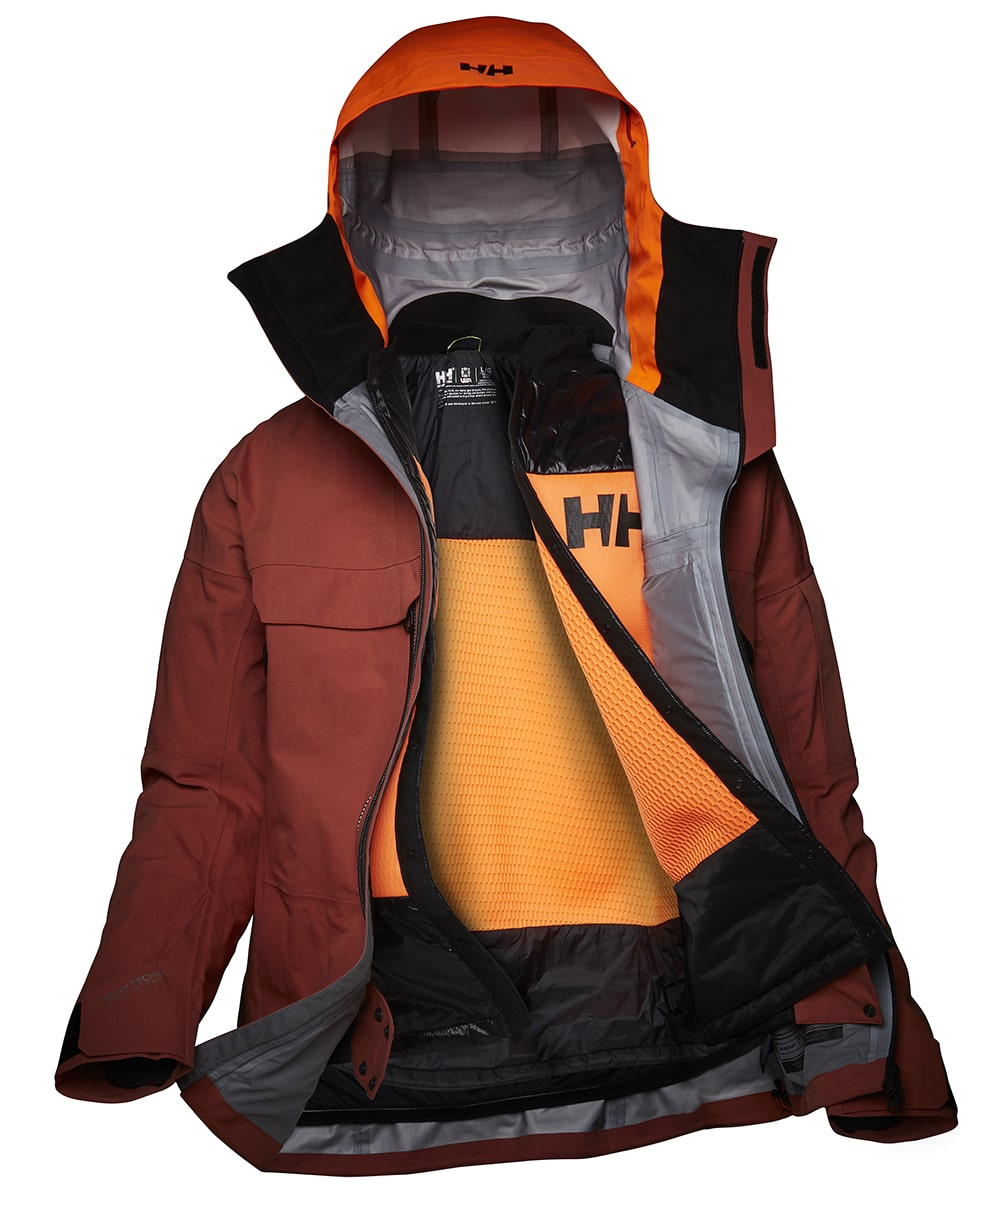 Ullr freeride Helly Hansen